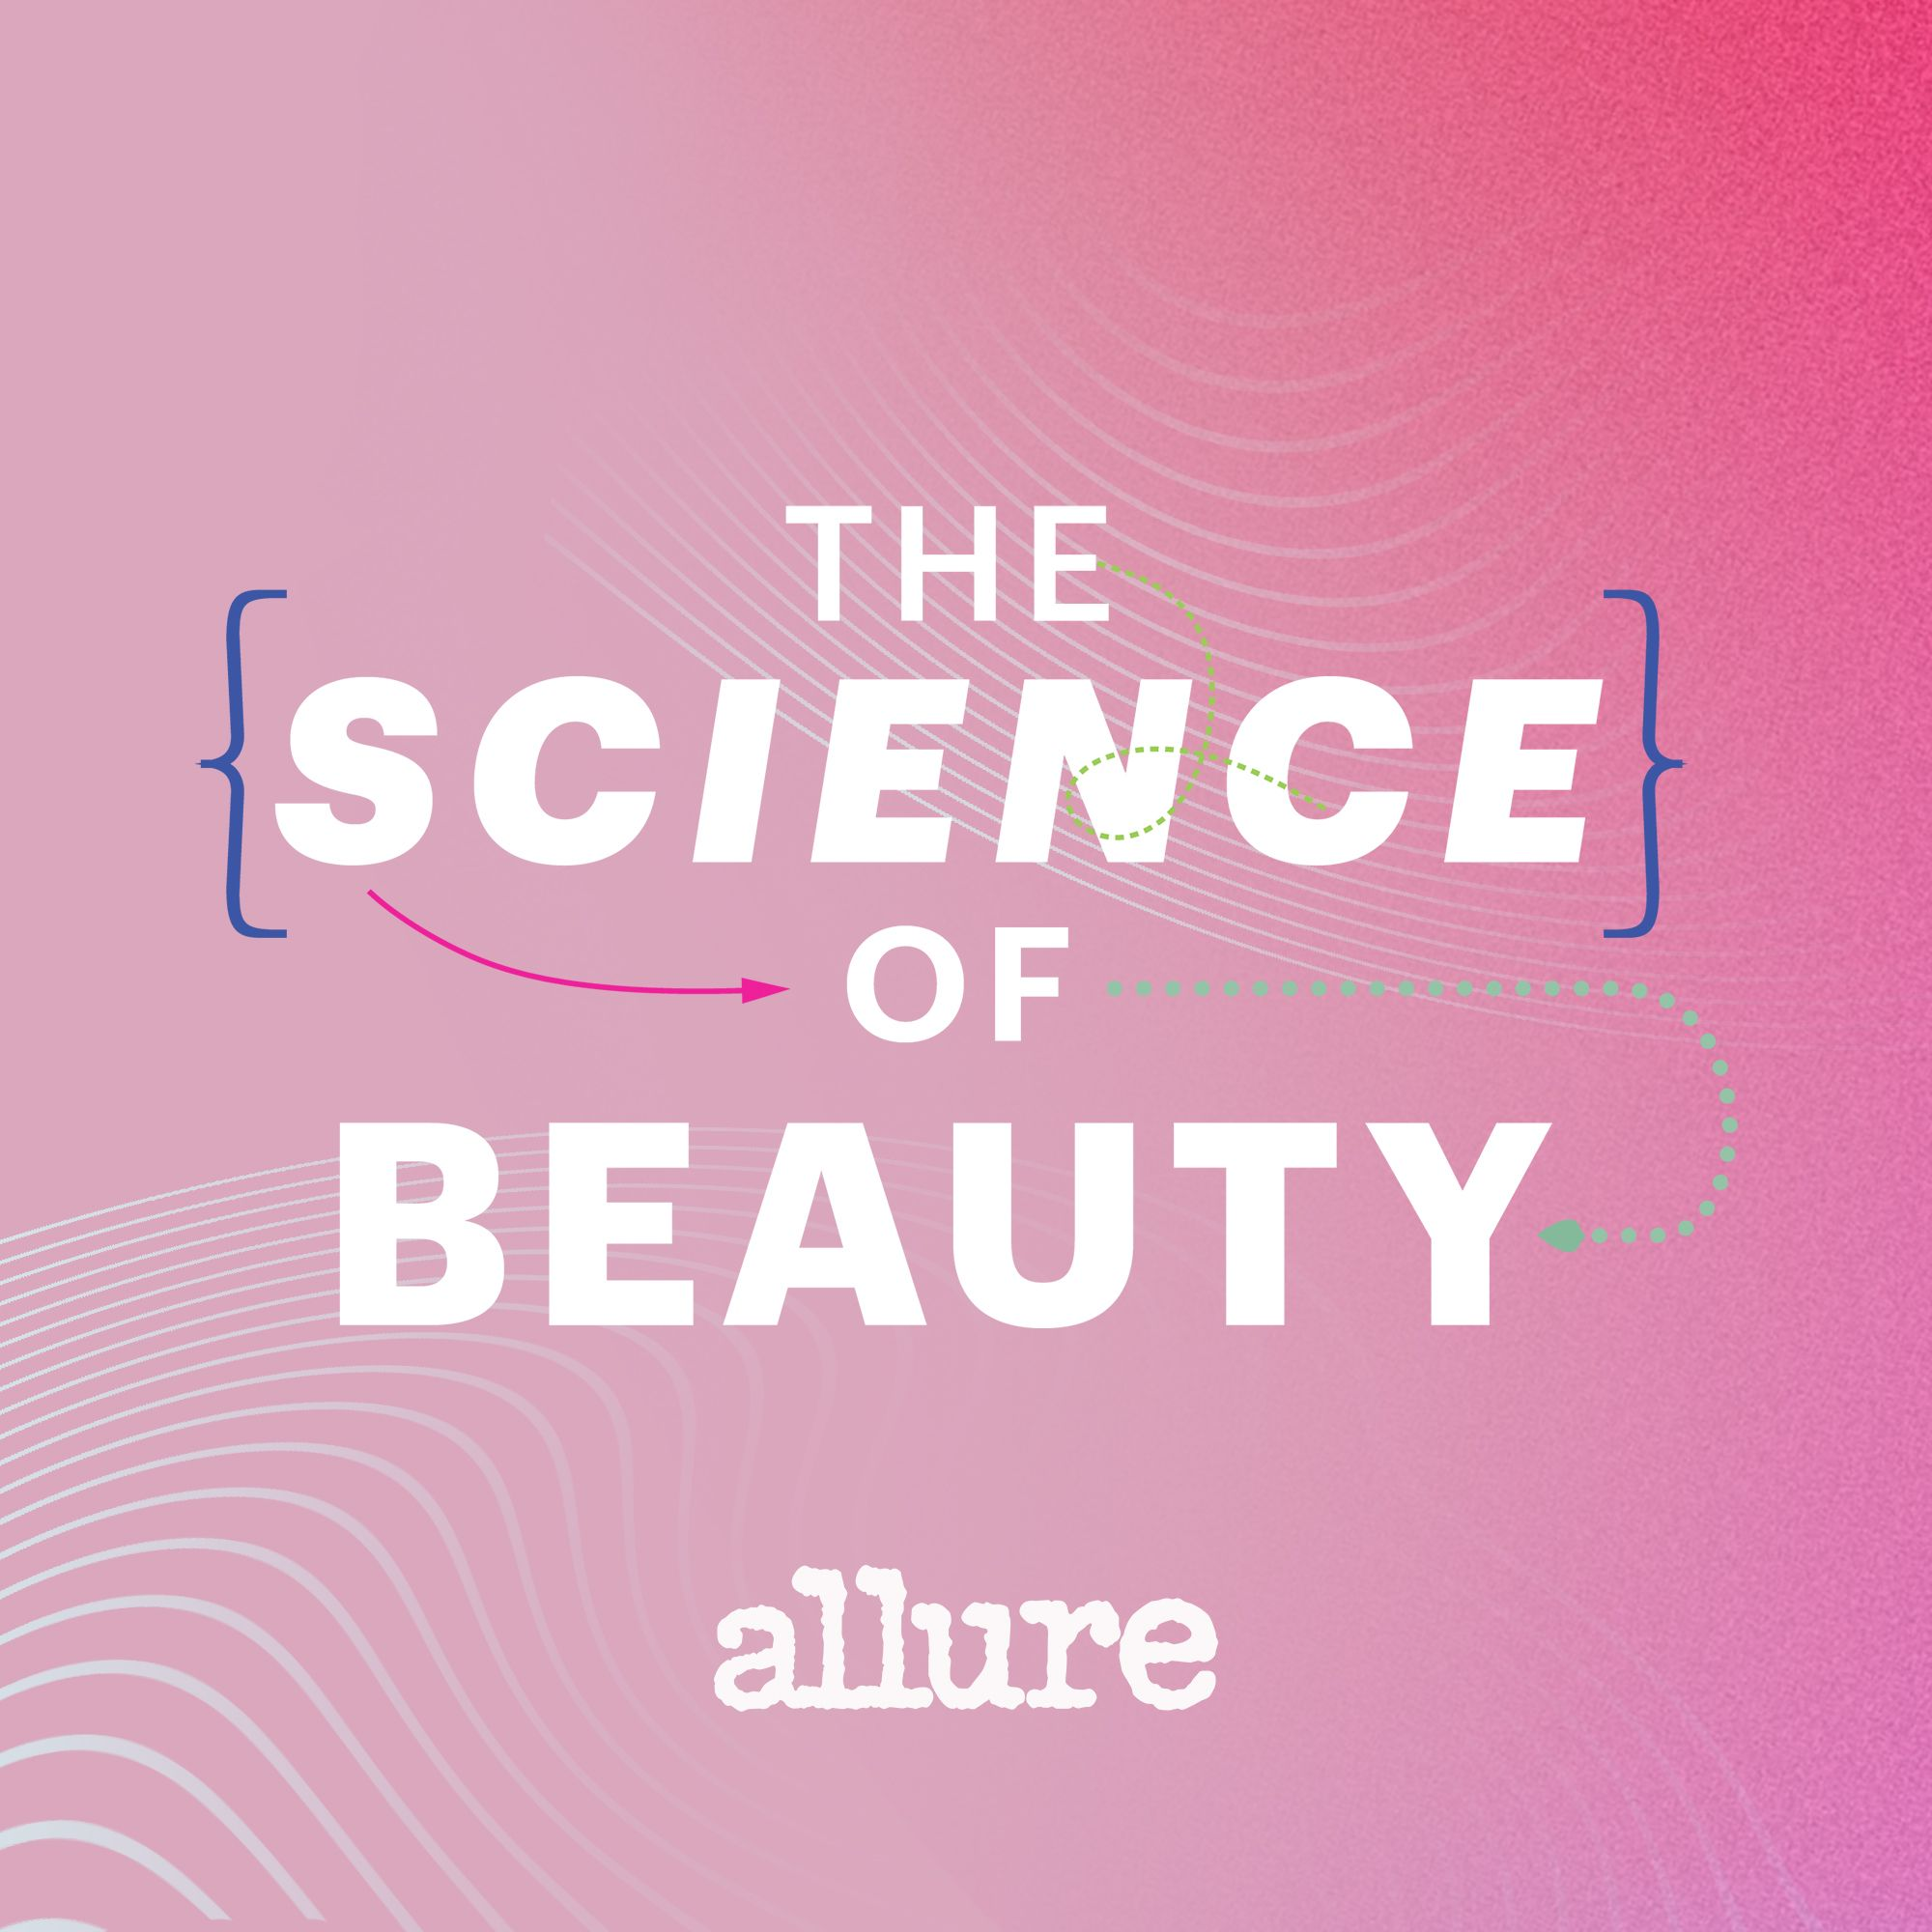 Introducing Allure: The Science of Beauty